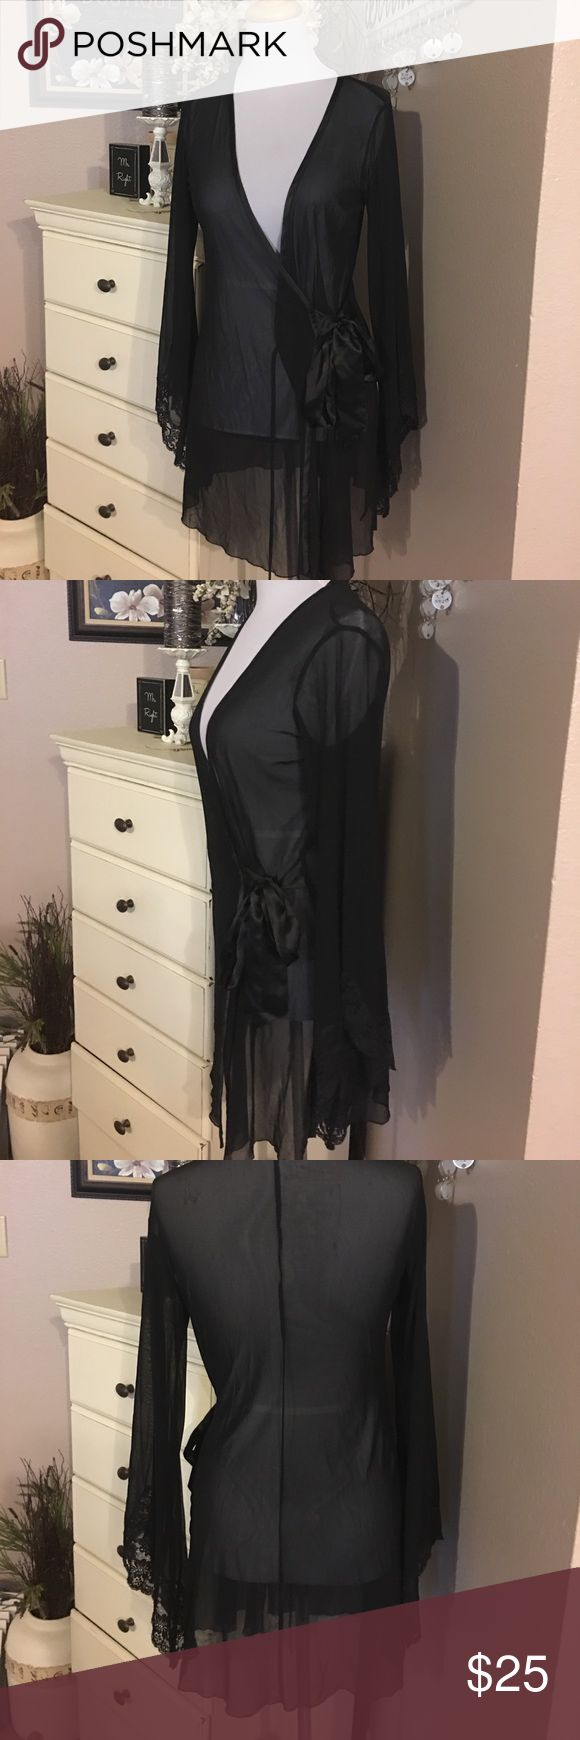 Fredericks of Hollywood robe Fredericks of Hollywood sheer robe. Excellent condition size small no tears Frederick's of Hollywood Intimates & Sleepwear Robes